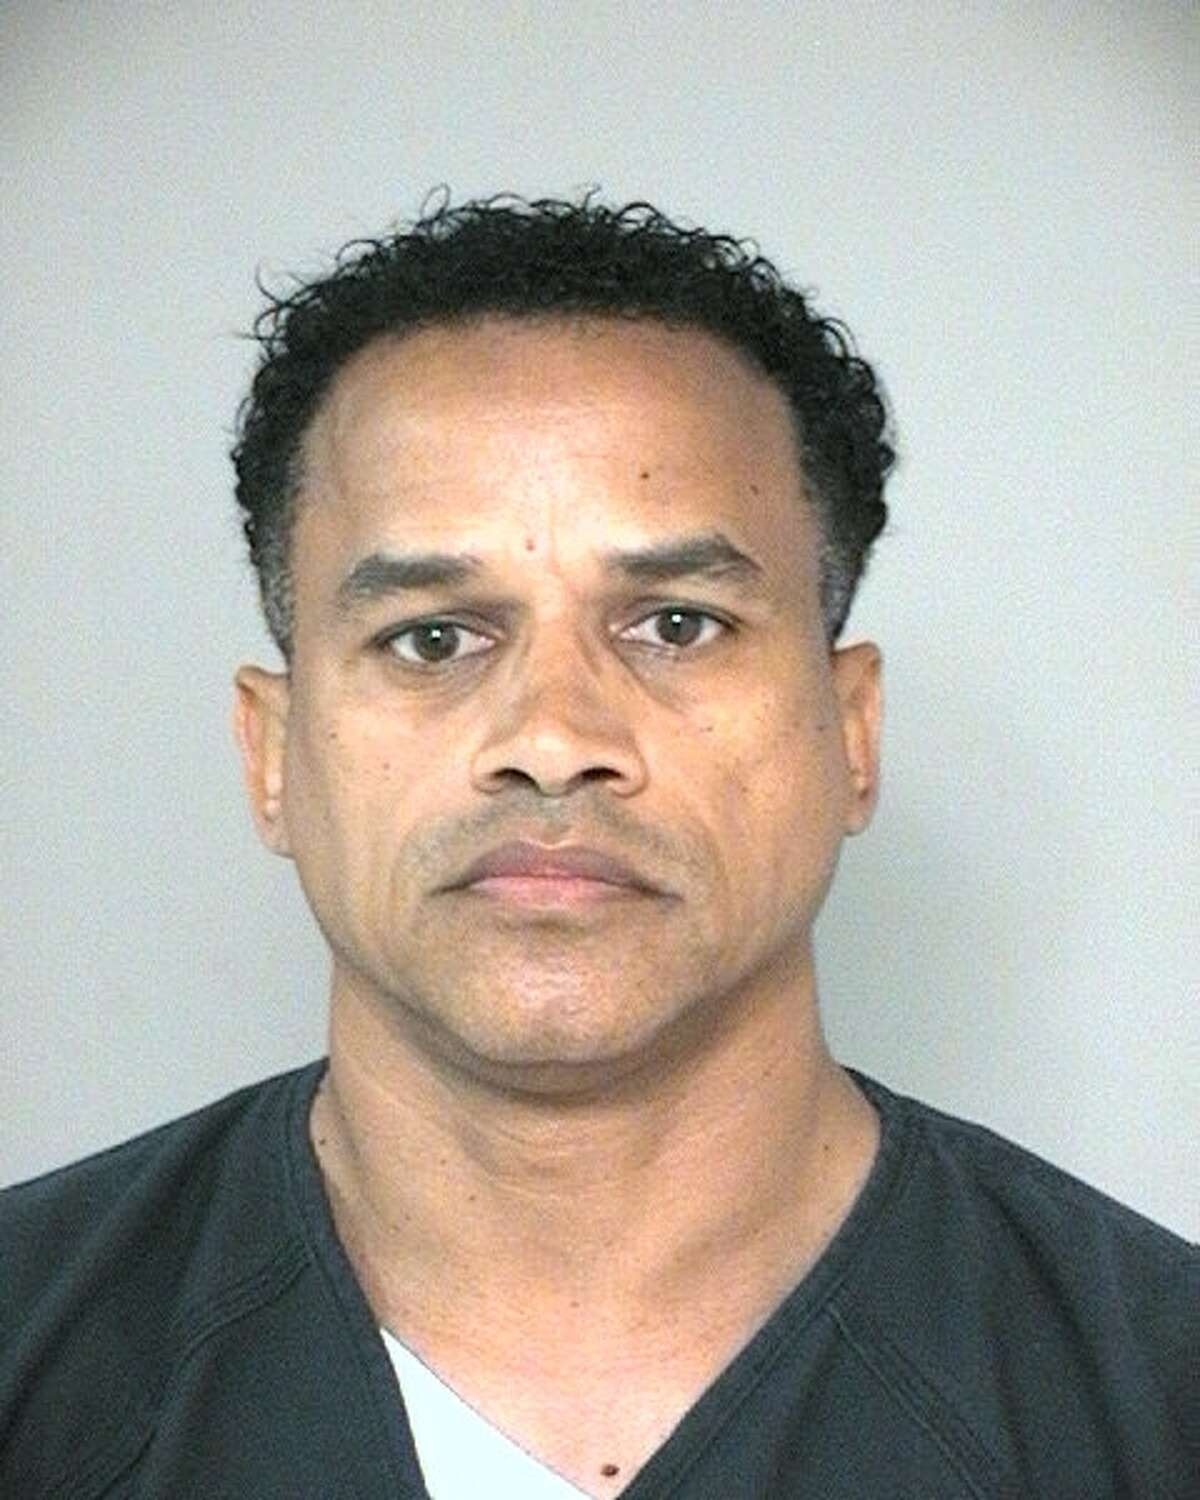 Paul Roberts, 53, was arrested after inappropriate Facebook messages surfaced between him and two male students.